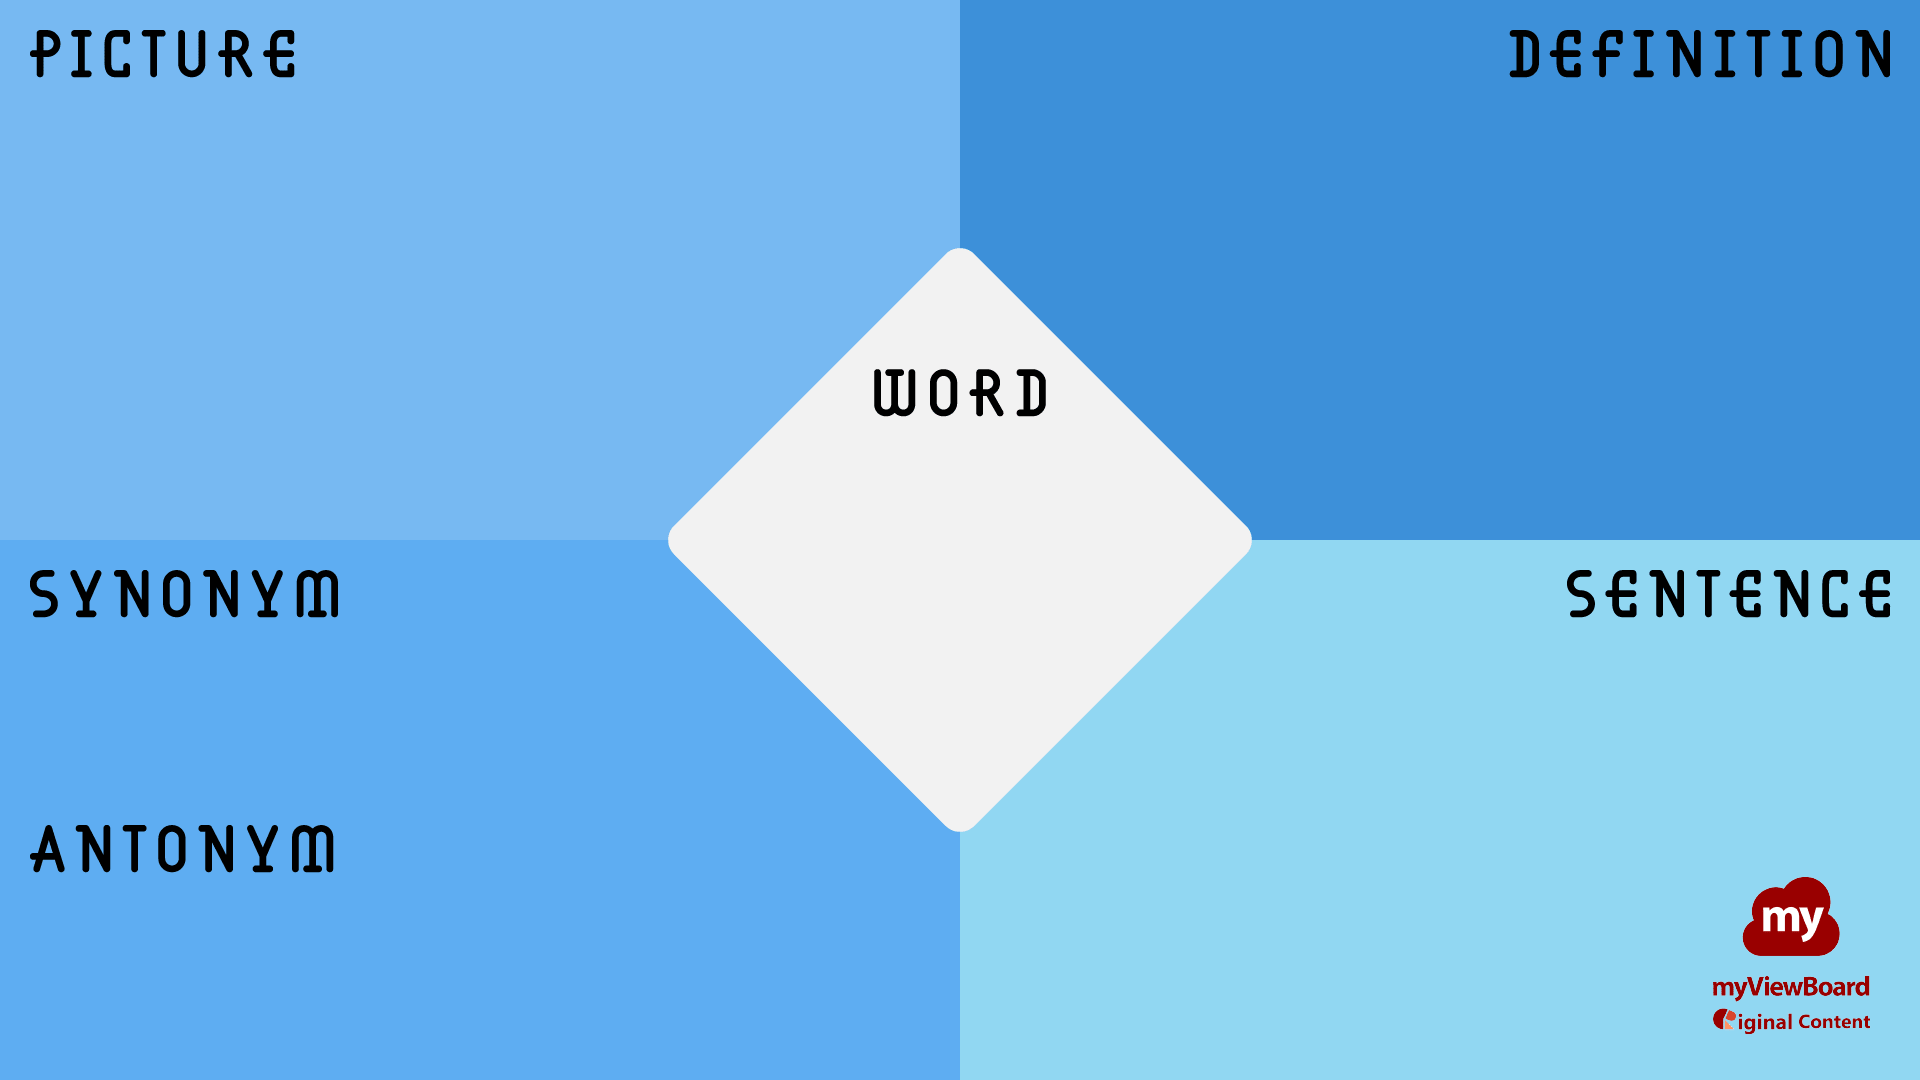 OCBnew thumbnail 4-square vocabulary(logo) diamond FHD.png